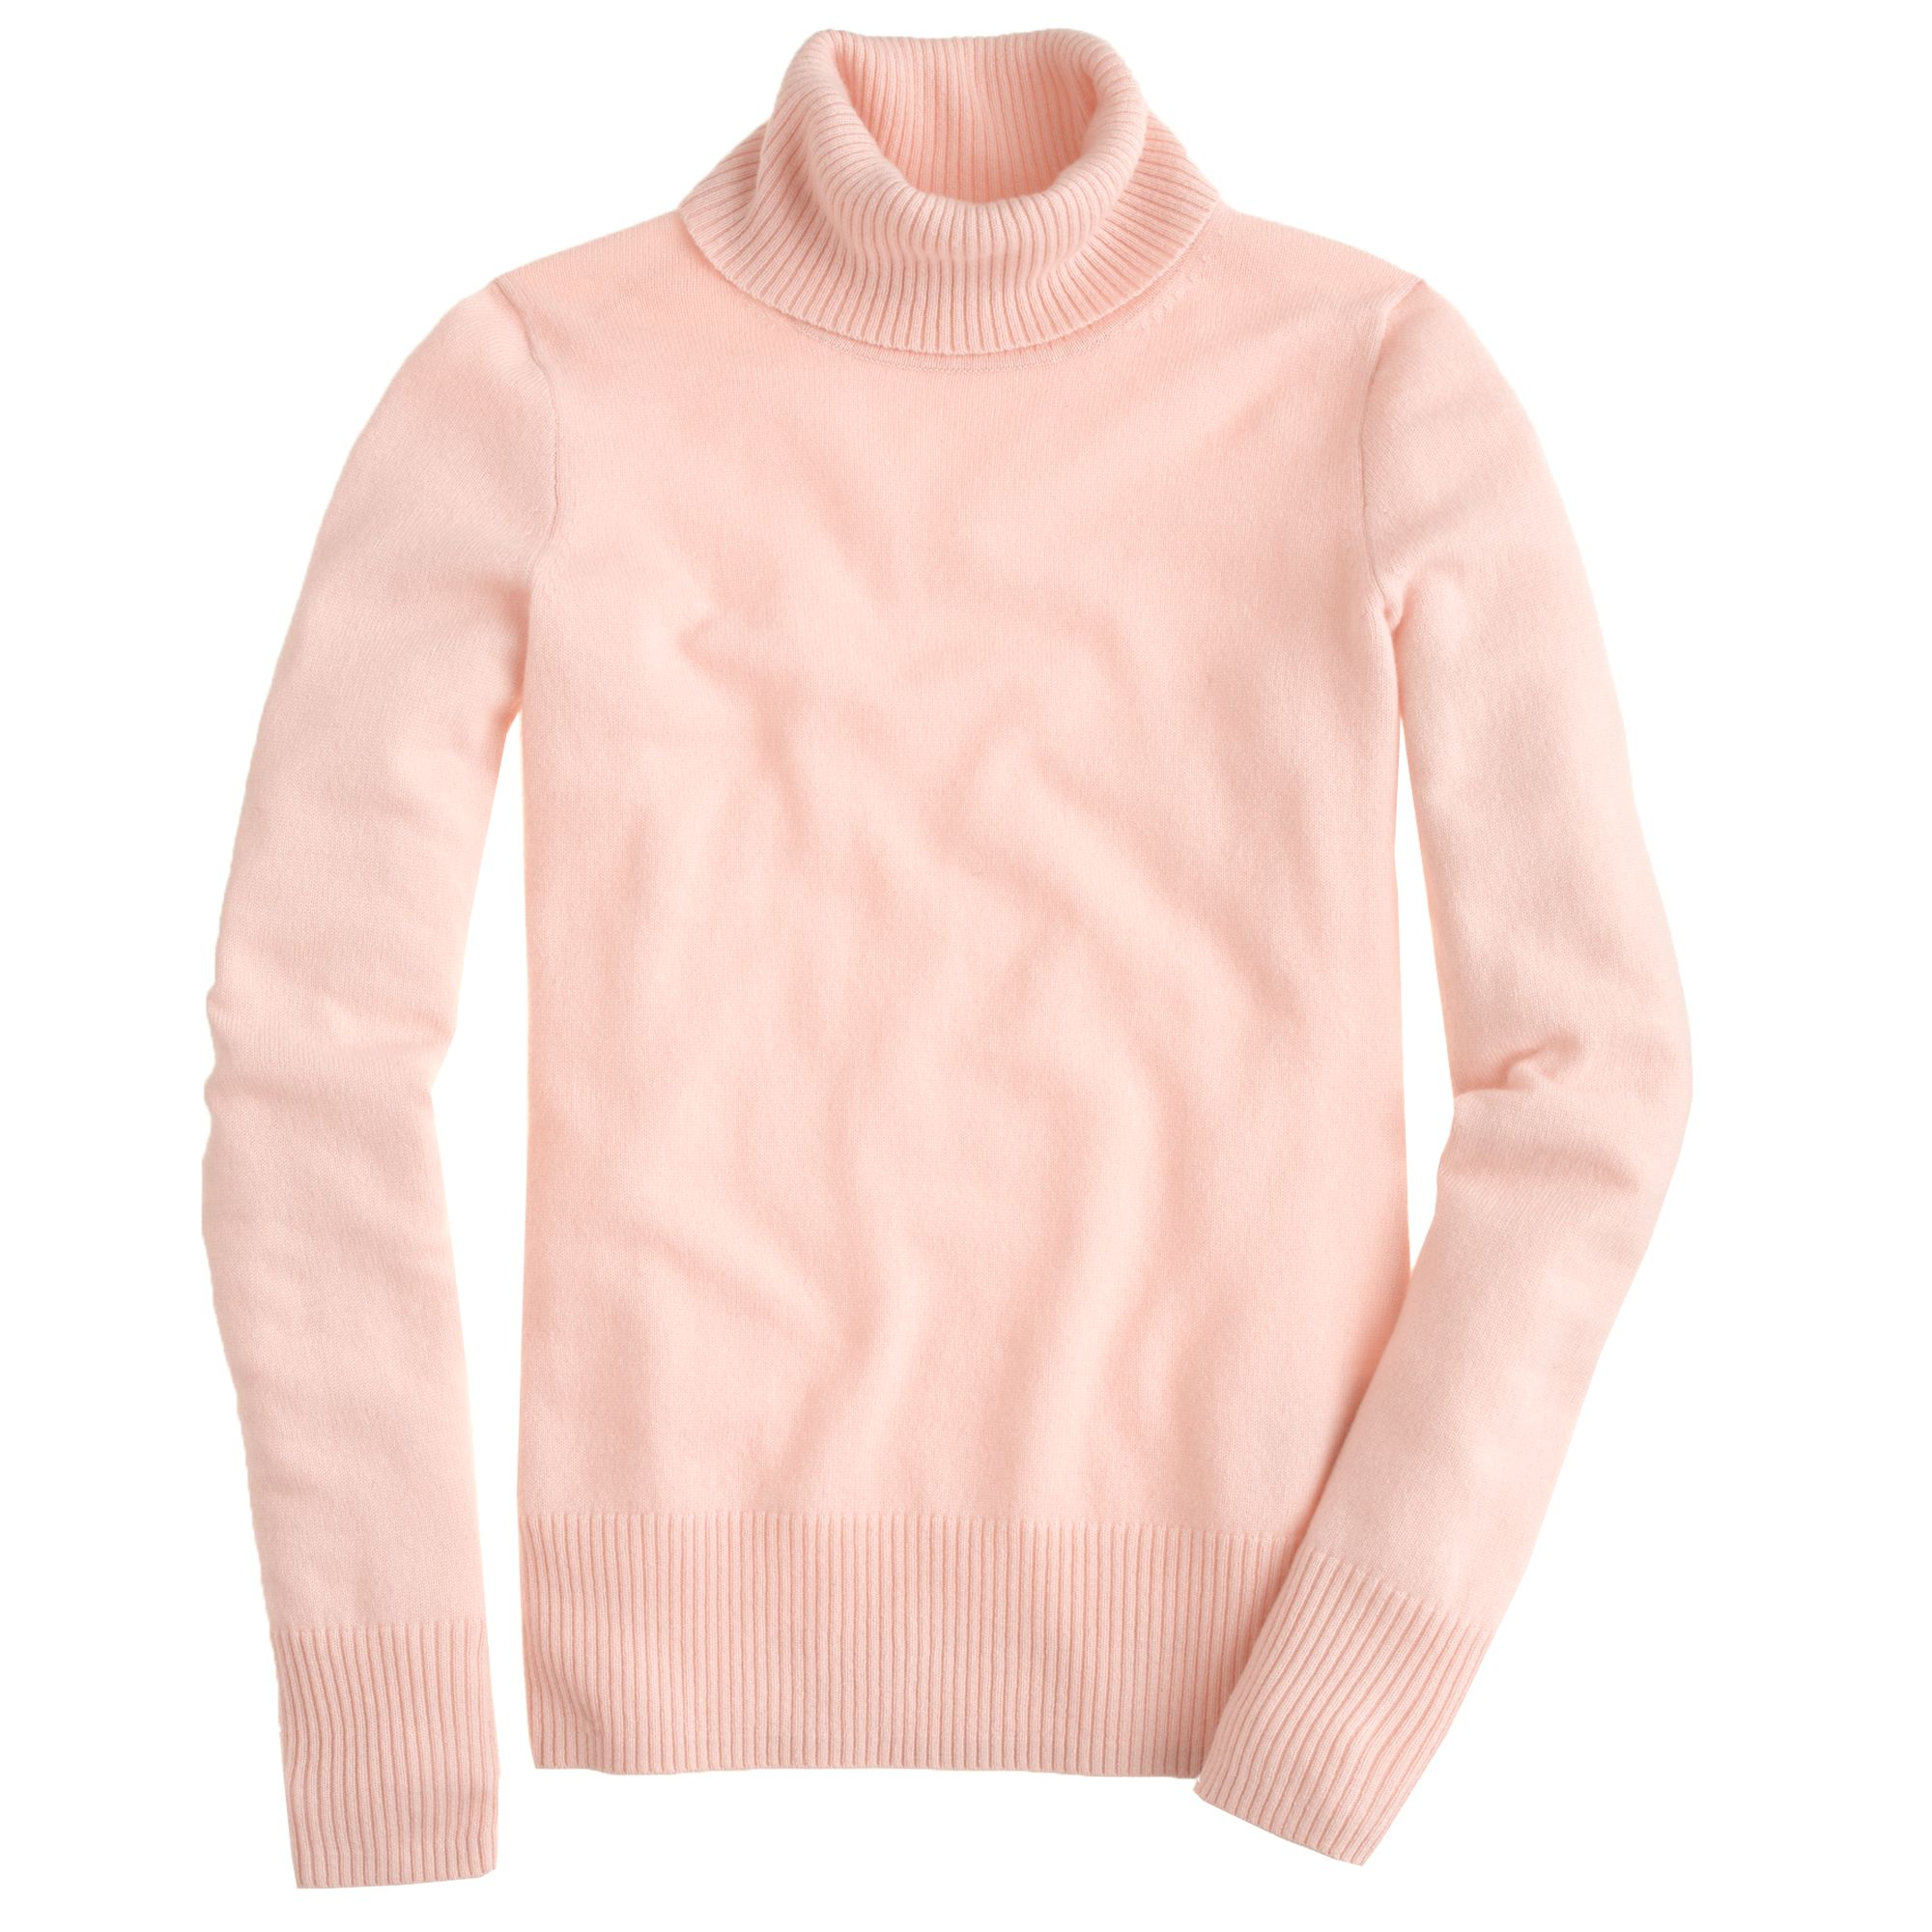 J.crew Collection Cashmere Turtleneck Sweater in Pink | Lyst